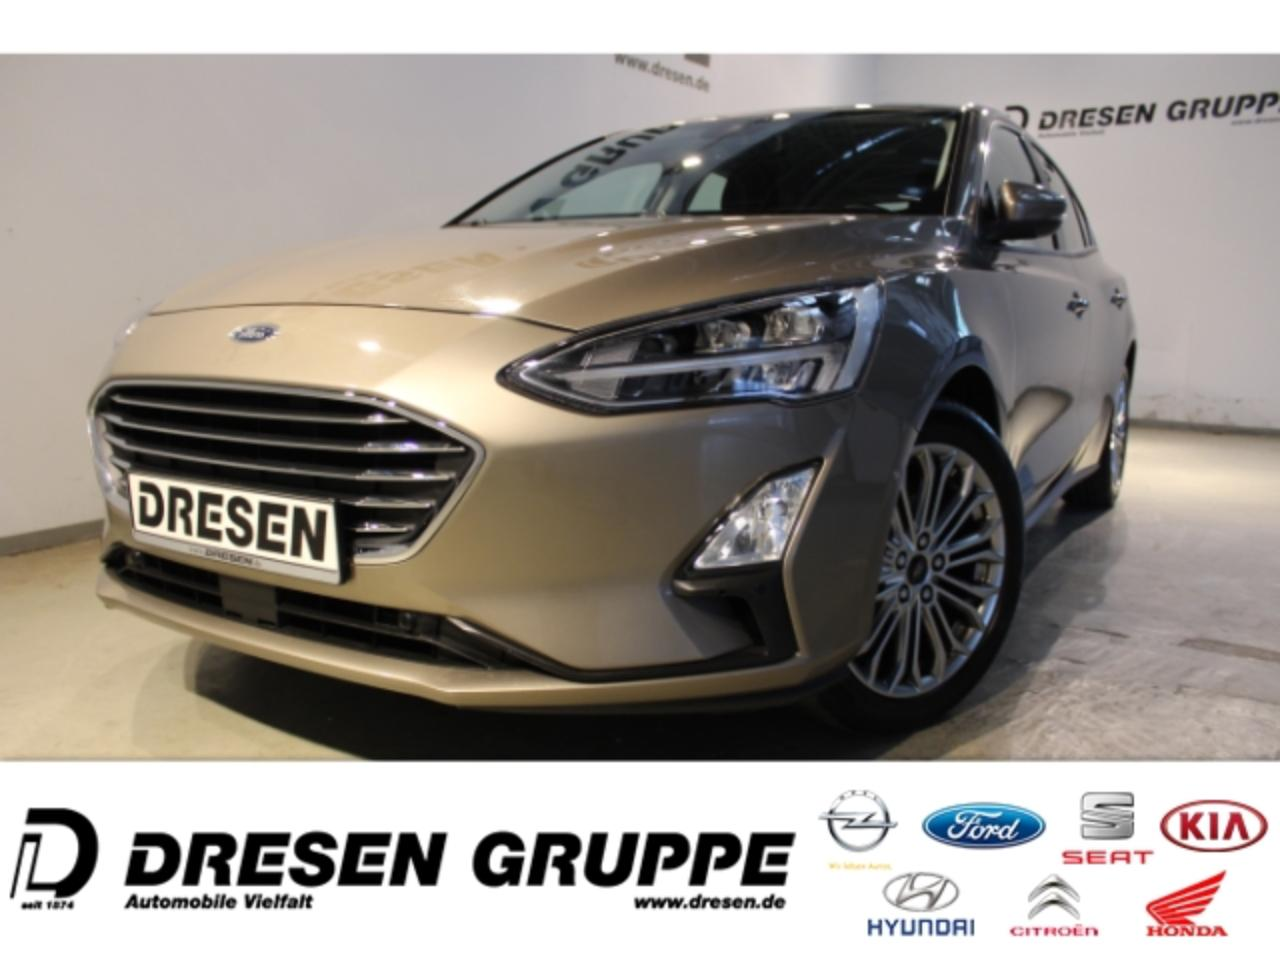 Ford Focus Titanium 1.0 EcoBoost Navi+HEAD-UP-Display+LED-Sch